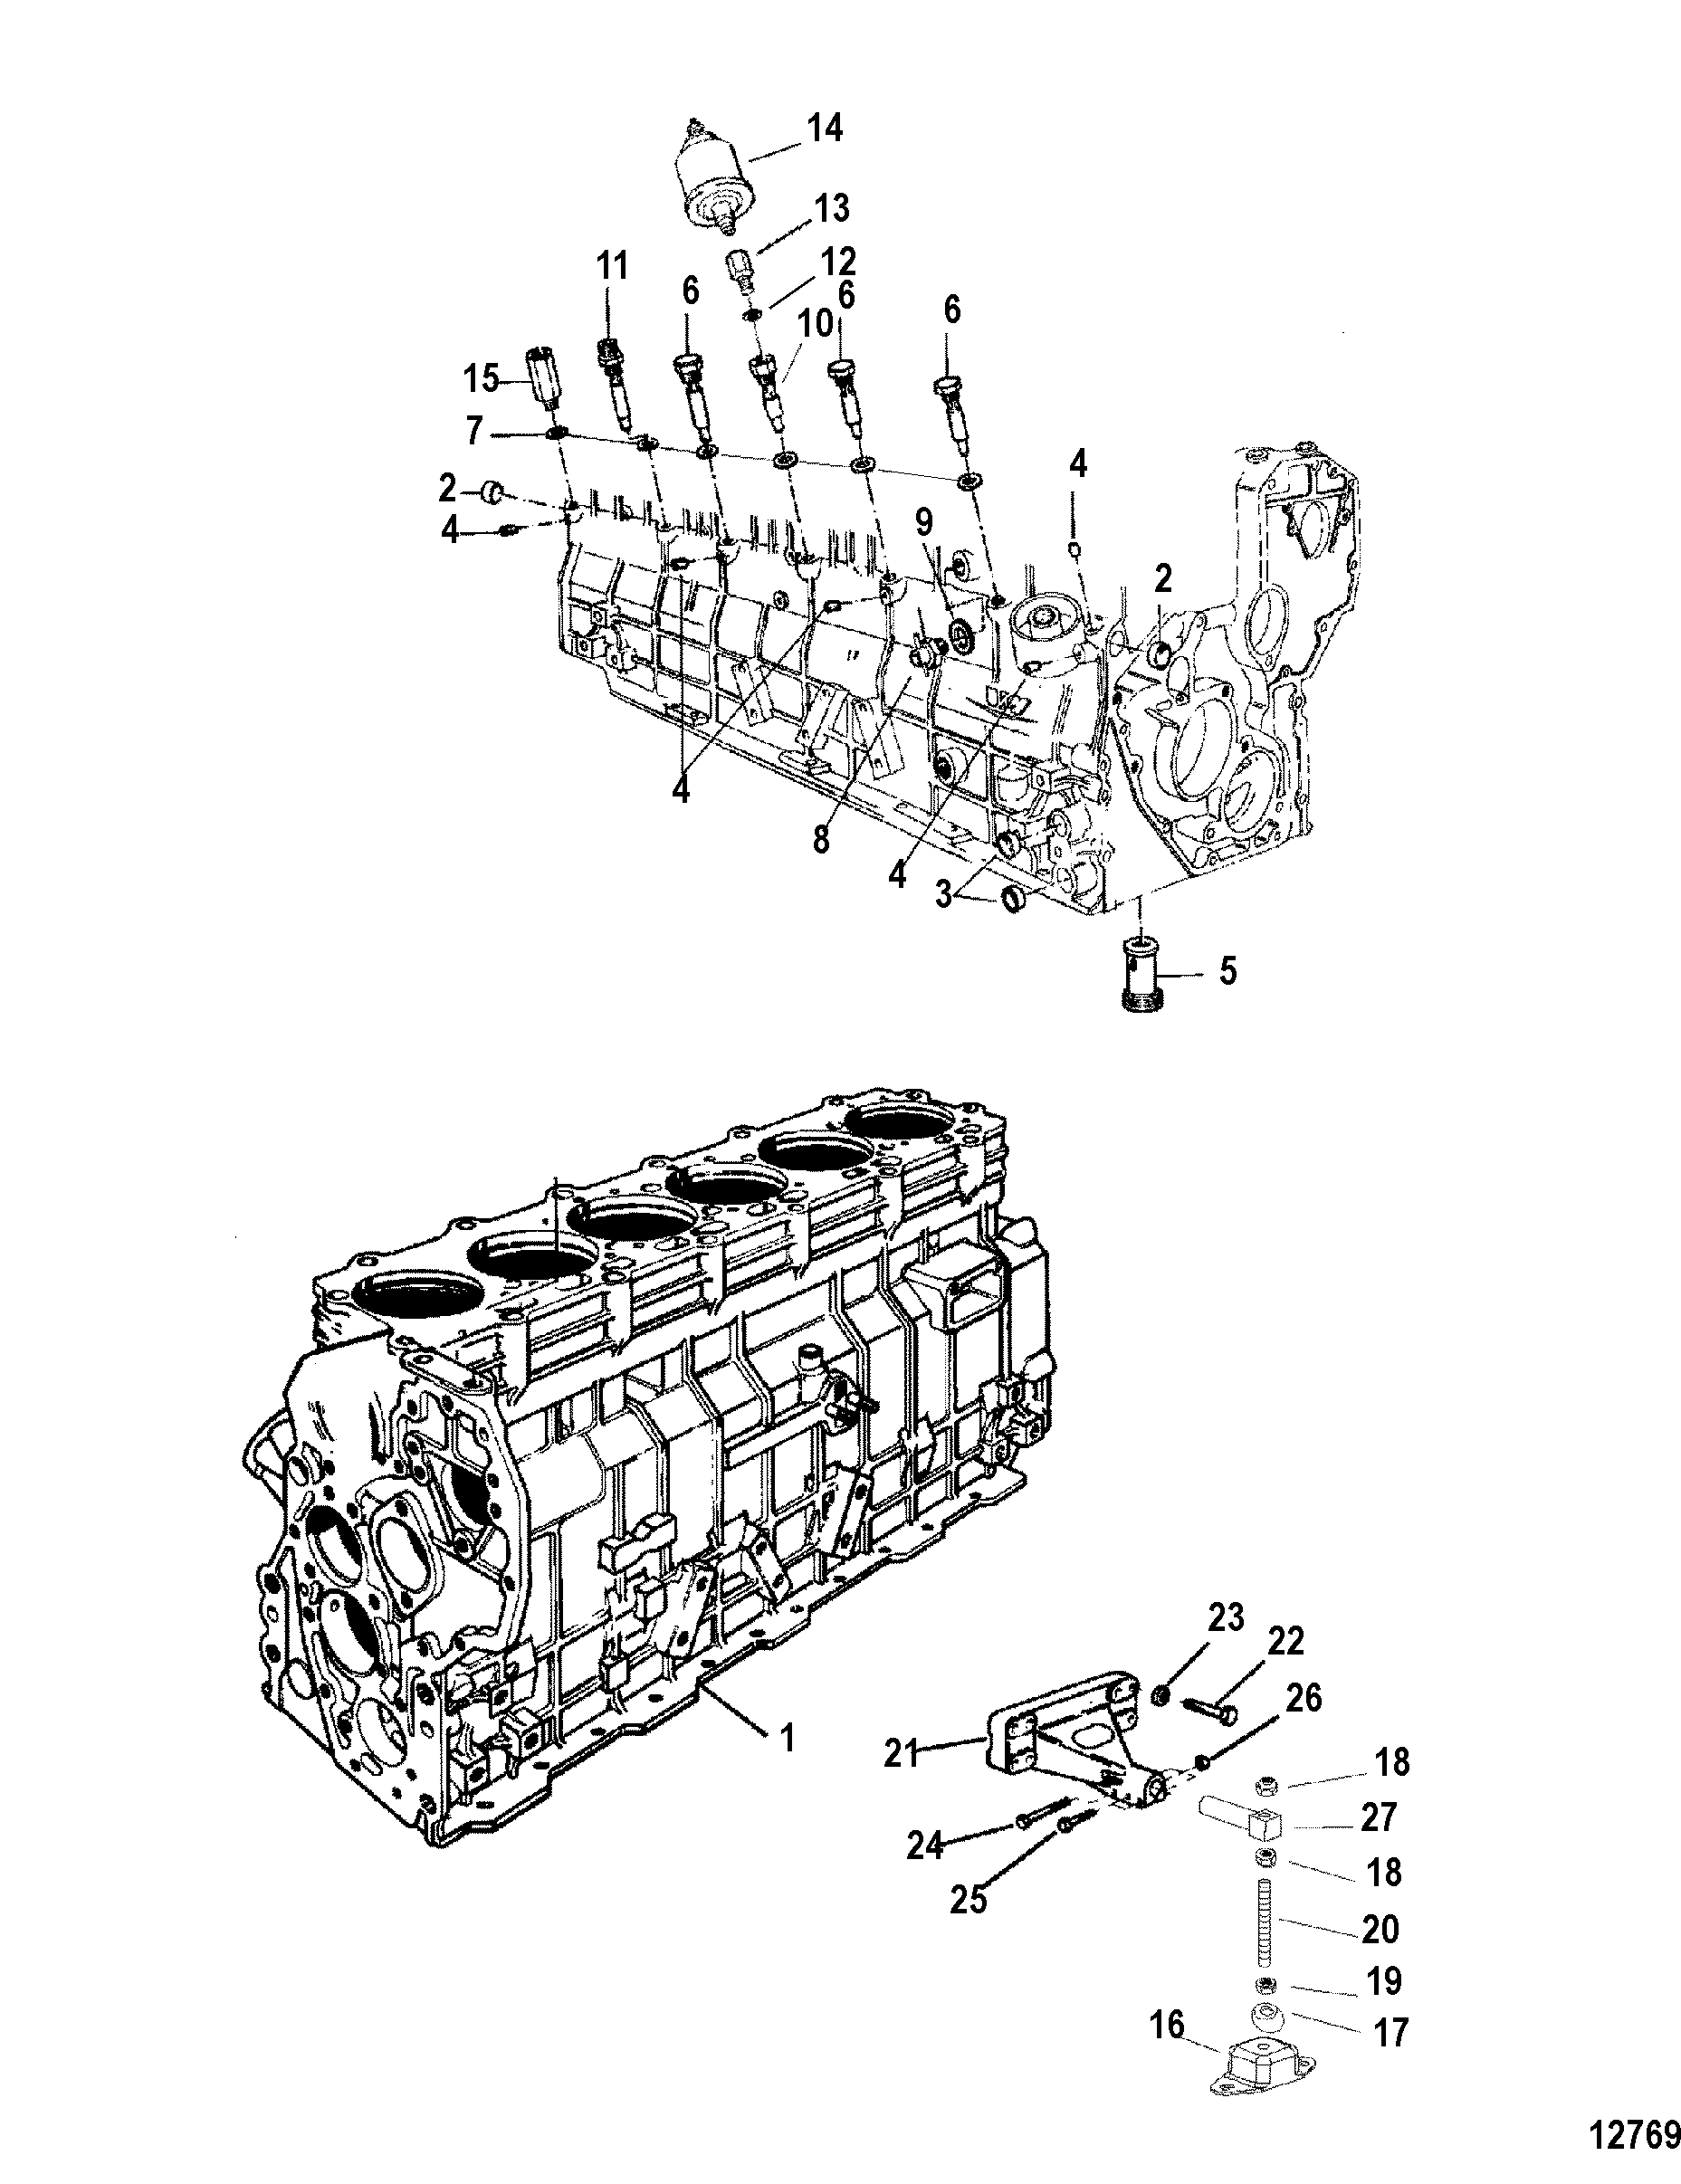 Engine And Cylinder Block FOR MERCRUISER / MIE CUMMINS